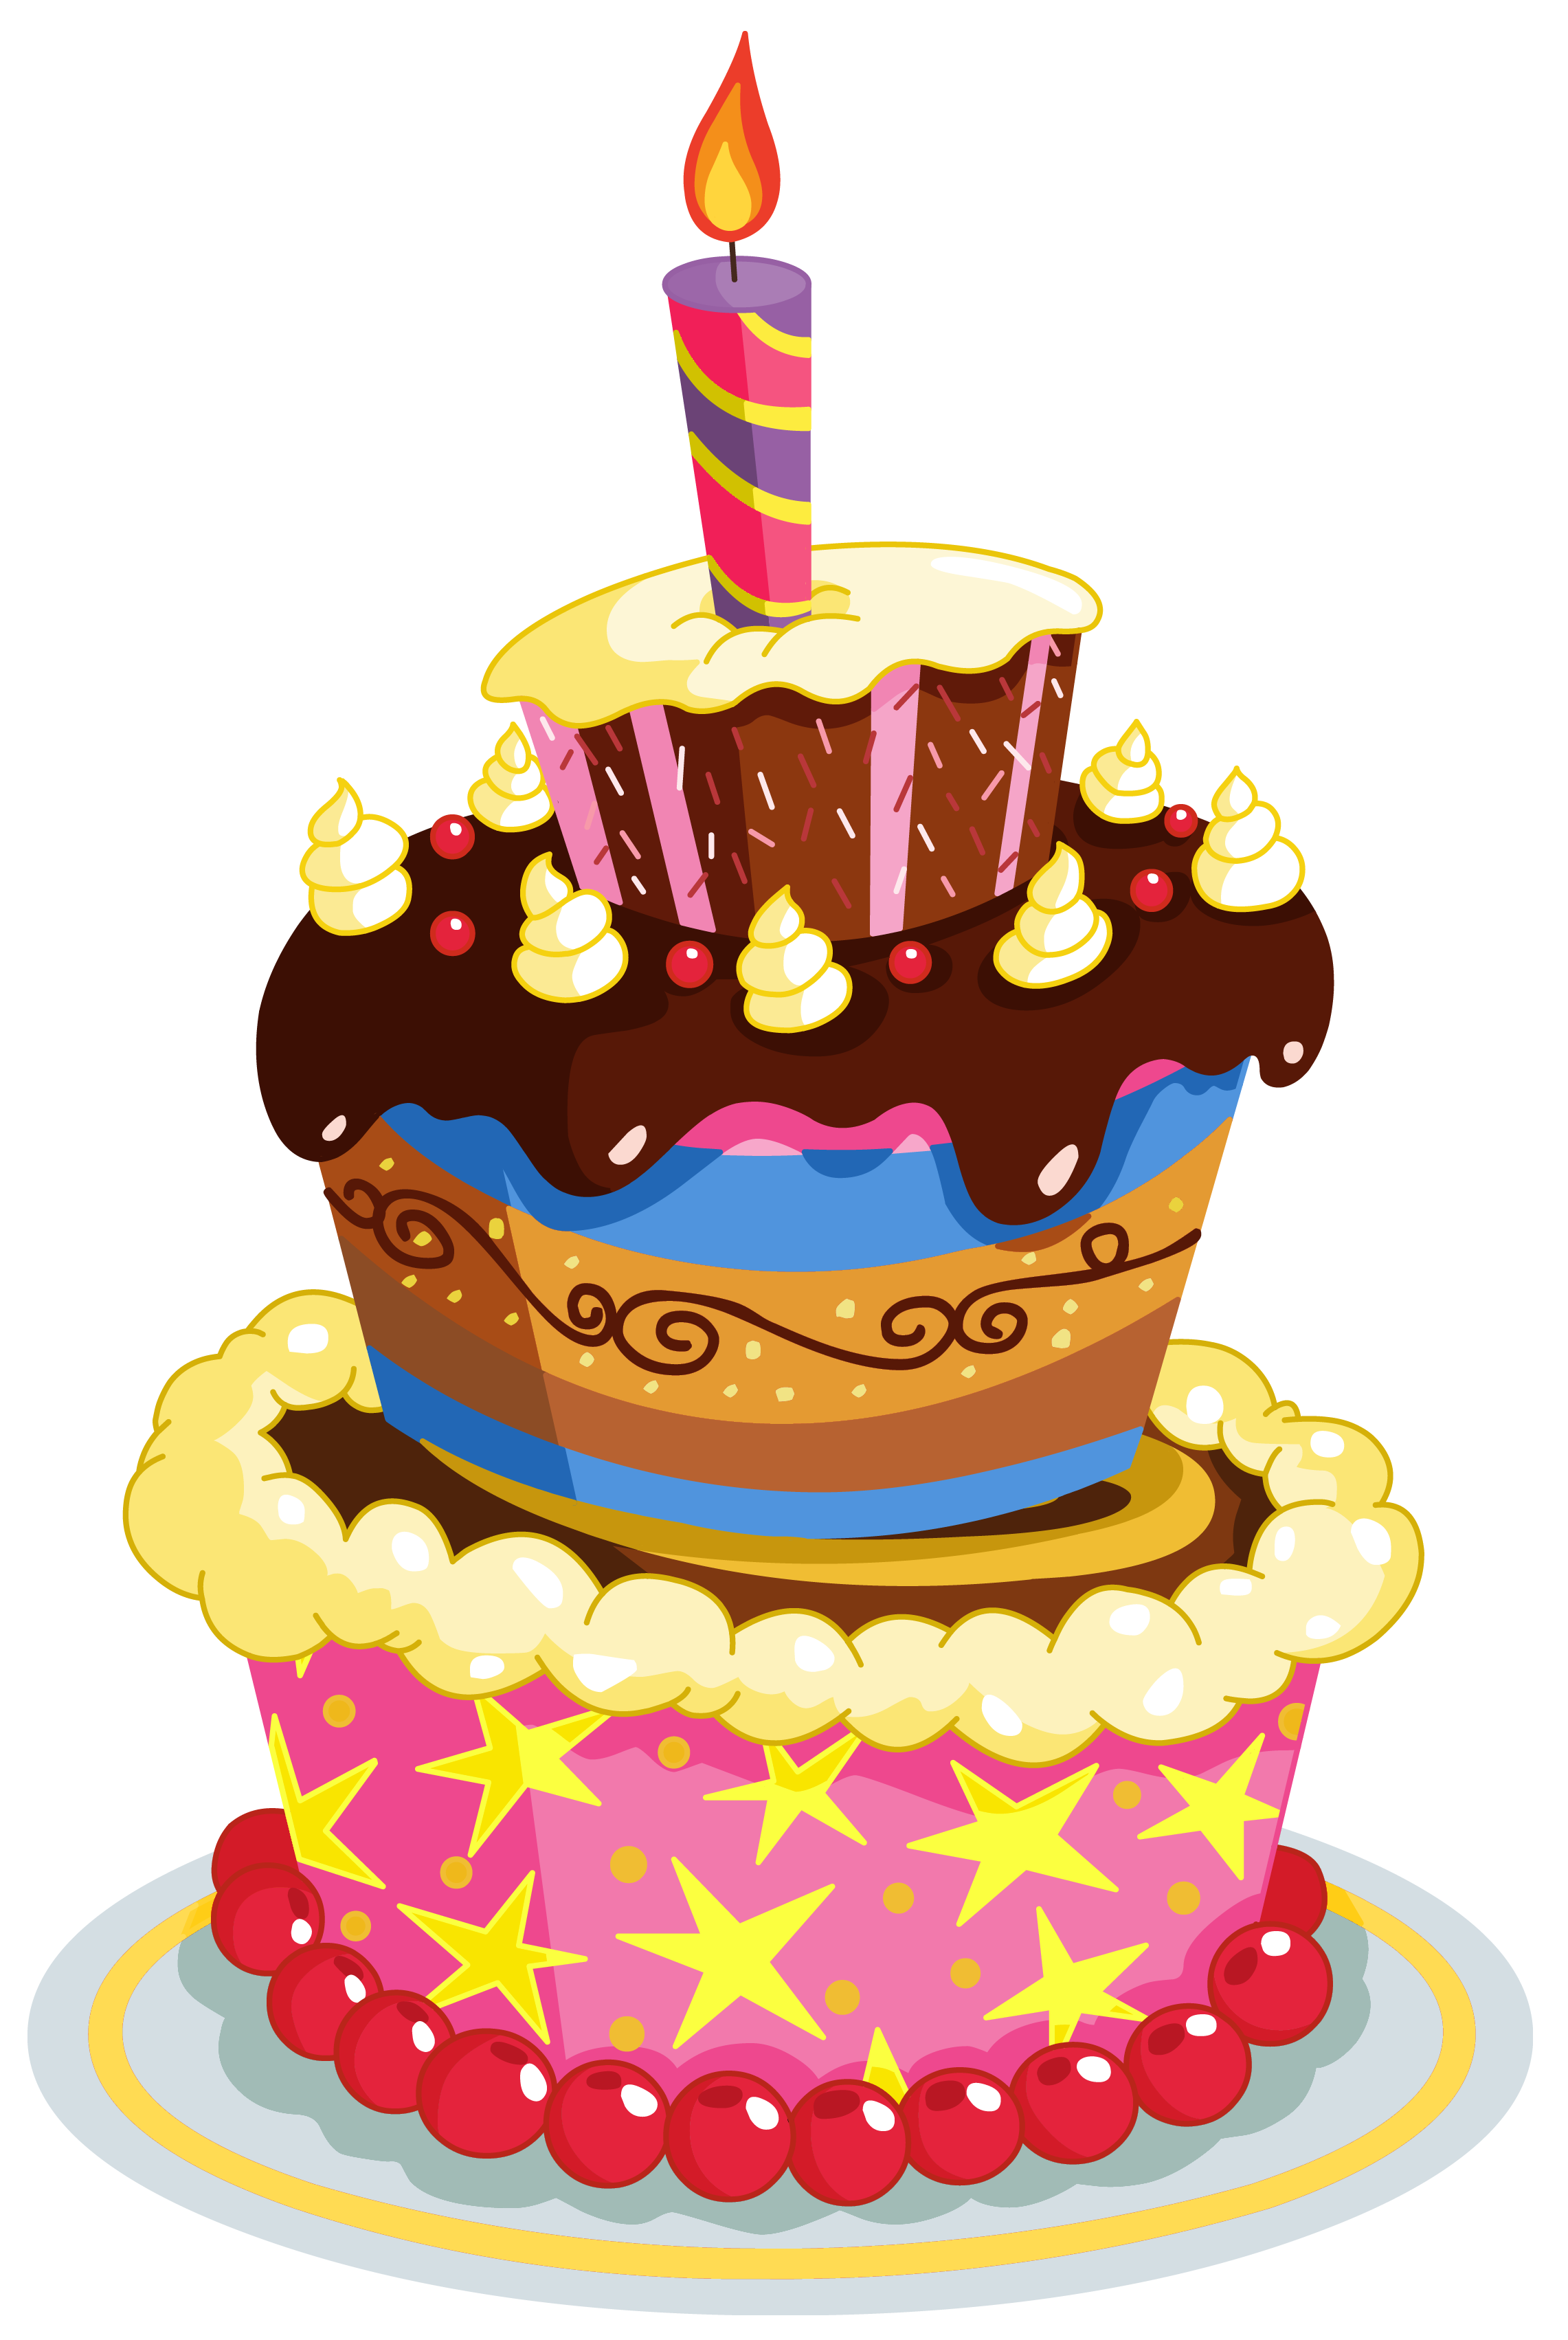 Strange Birthday Cake Clip Art Free Download Clip Art Free Clip Art Funny Birthday Cards Online Fluifree Goldxyz